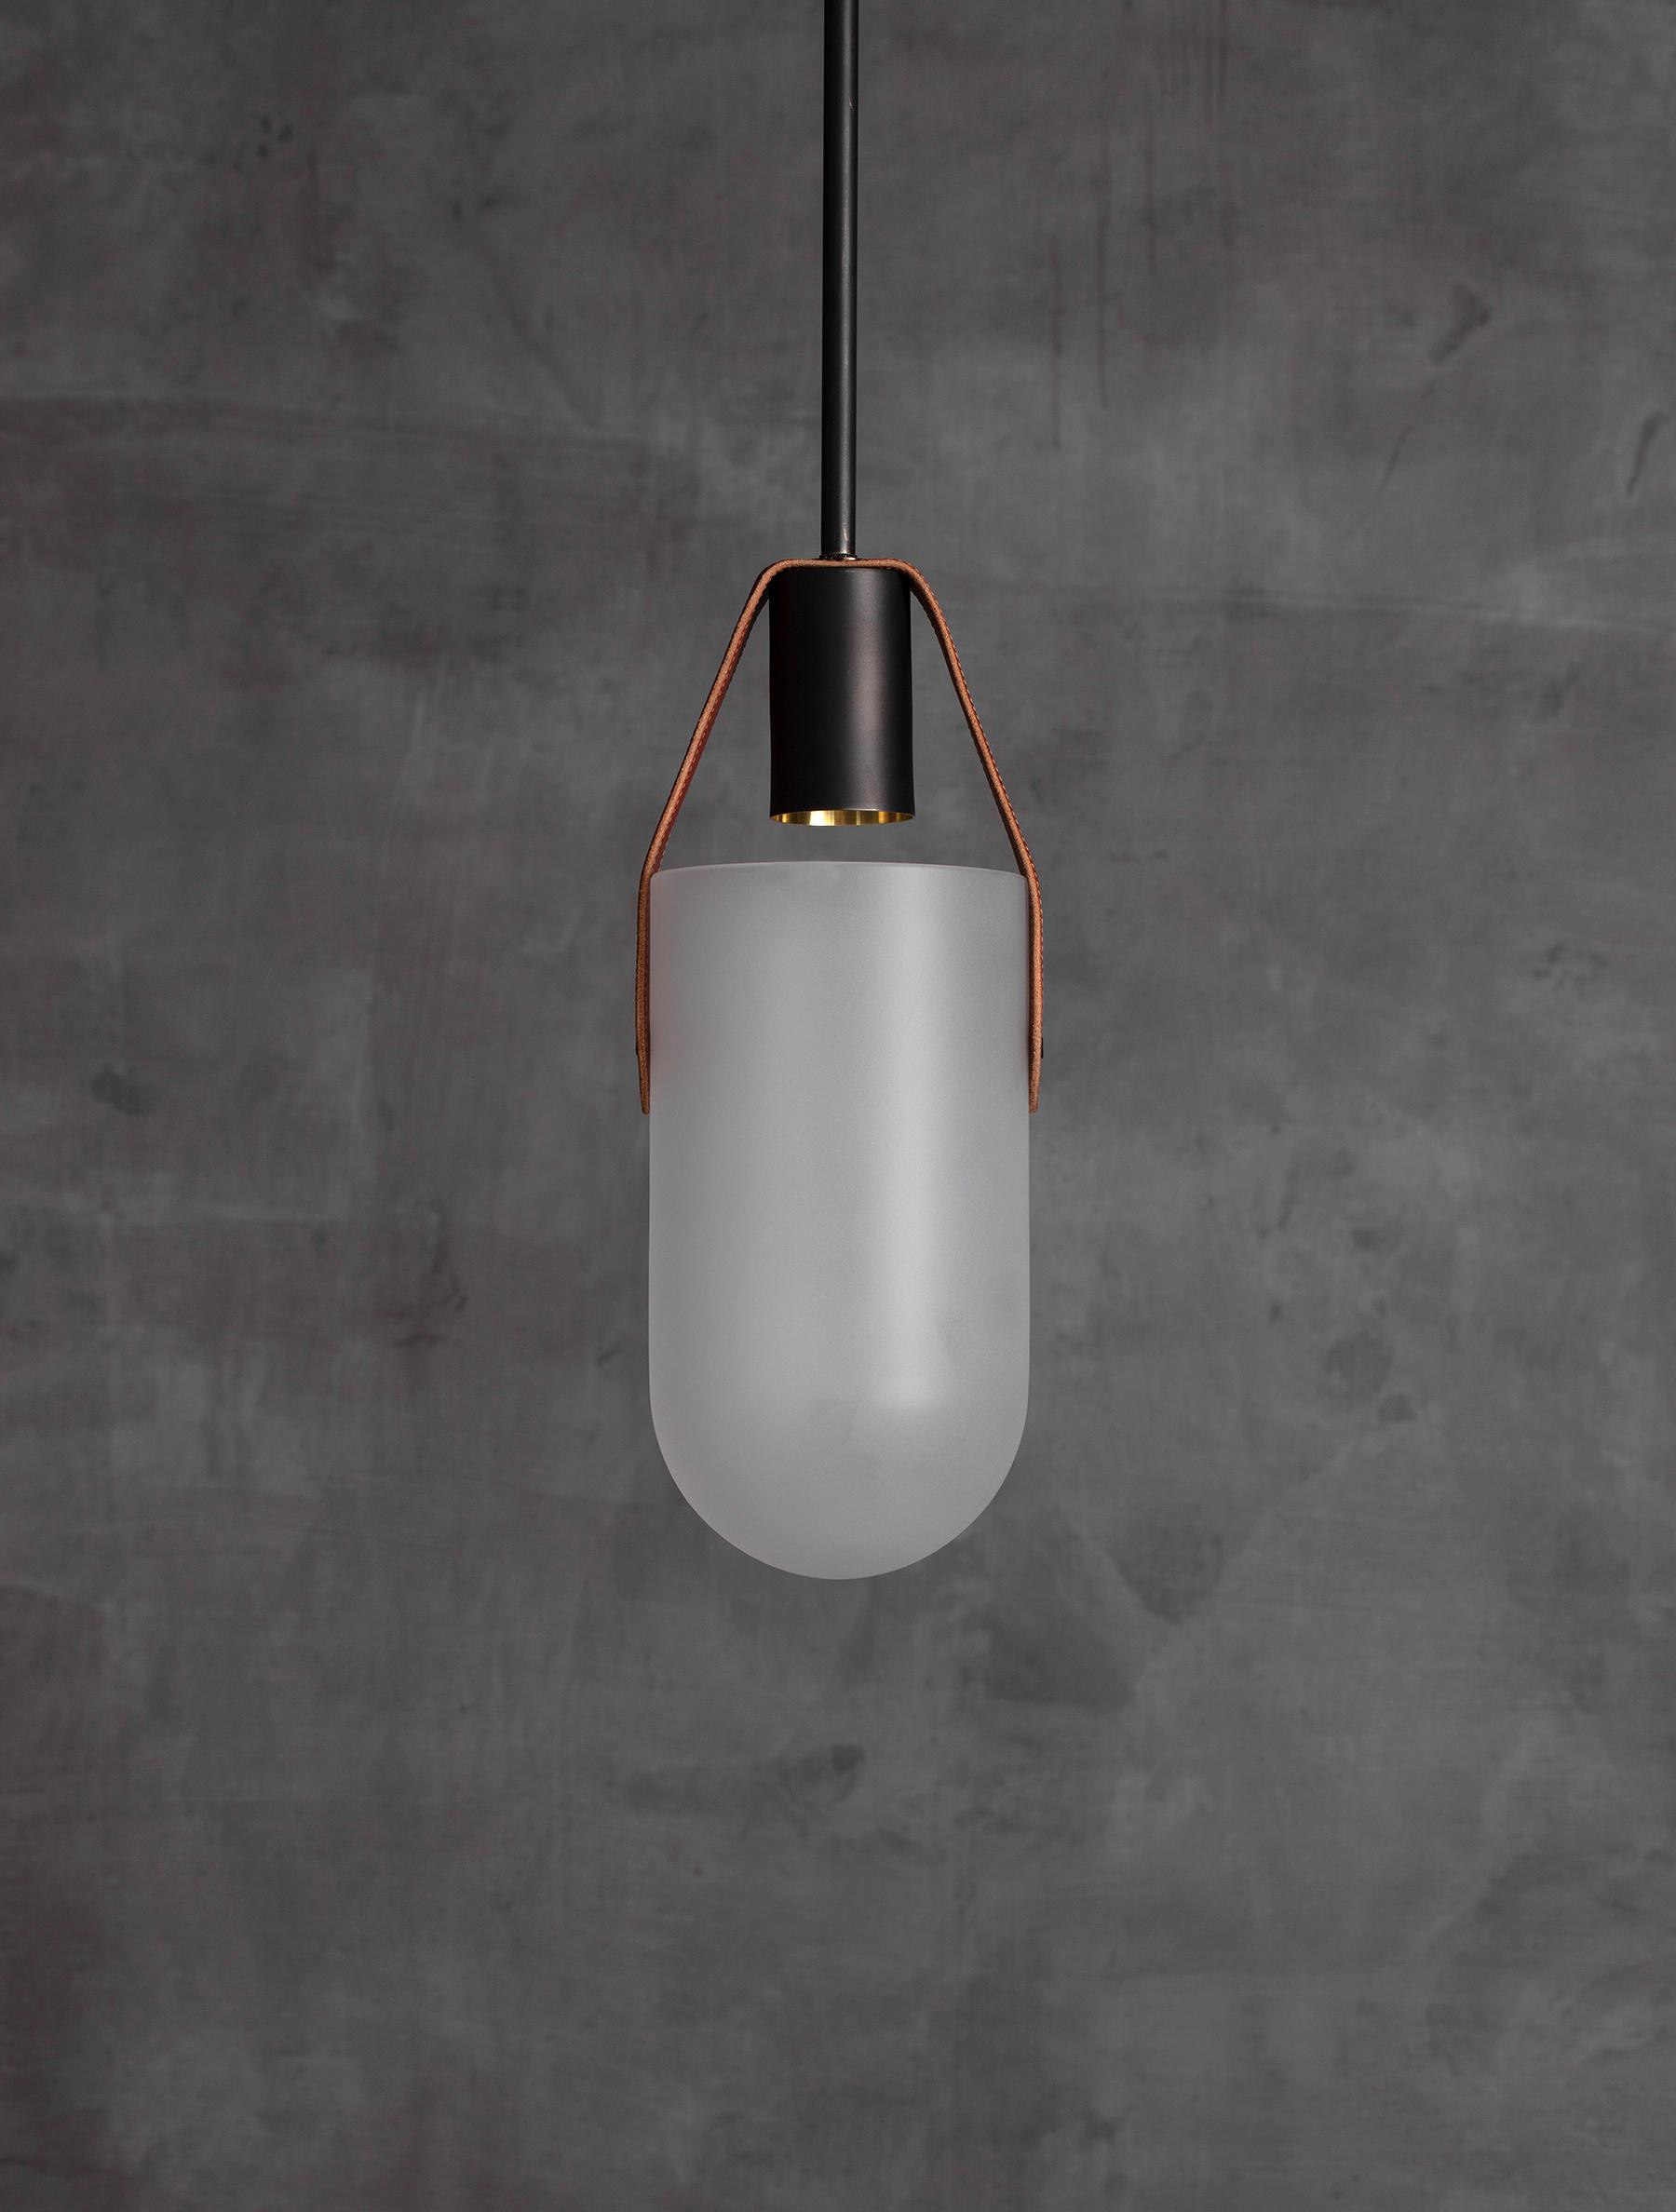 Well Pendant Mini shown in Flat Black, Tan Leather, Frosted Glass